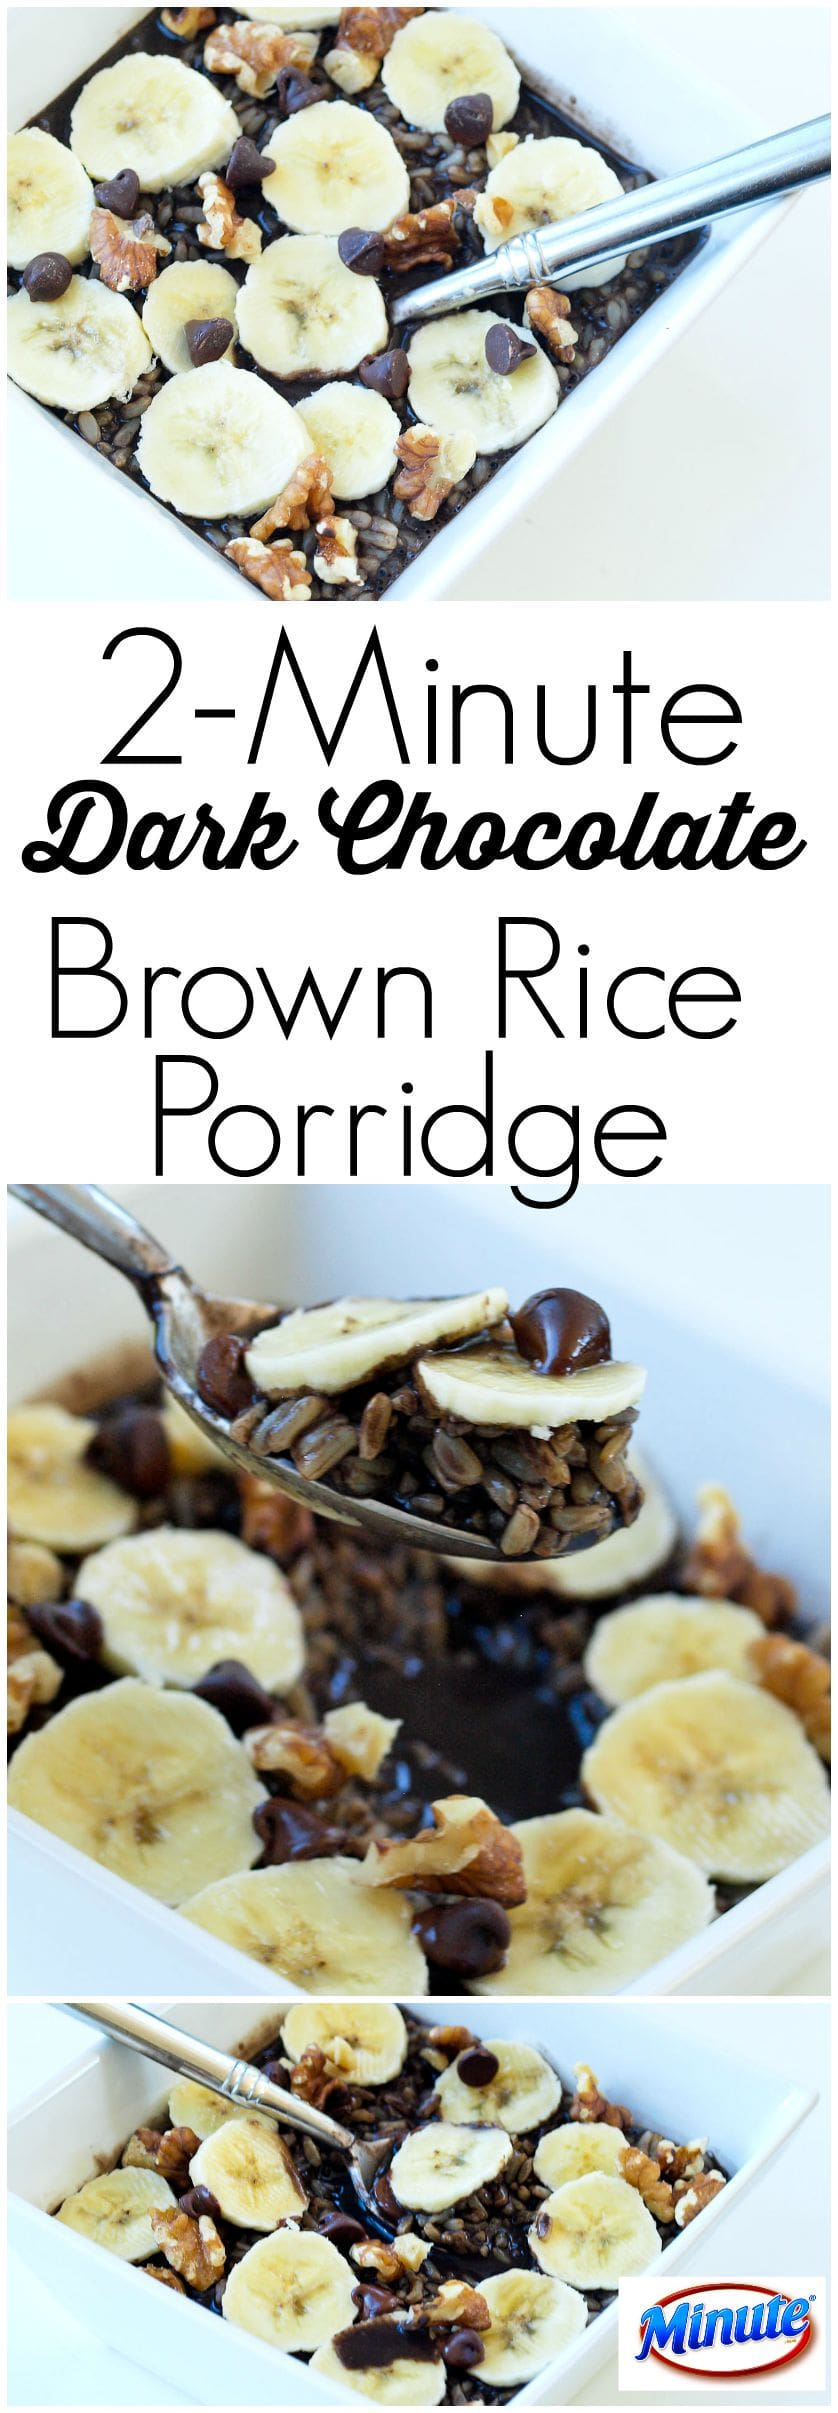 2-Minute Dark Chocolate Brown Rice Porridge recipe. In 2 minutes you can have a wholesome, decadent breakfast (or even dessert!) Easy recipe for busy mornings.